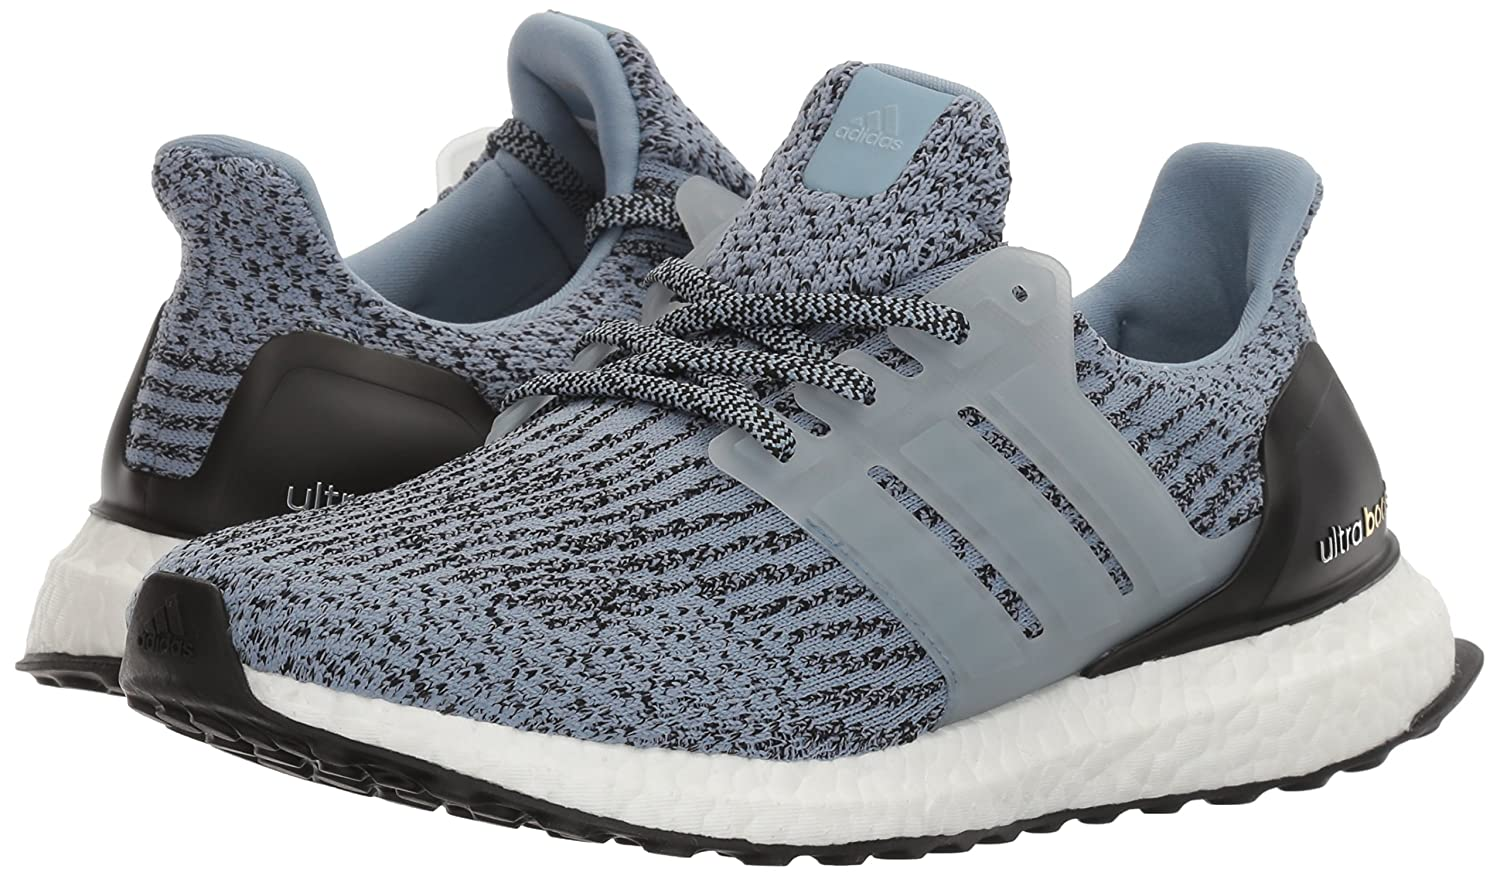 62618ce5c Adidas Ultra Boost Tactile Blue Adidas Ultra Boost Bb6180